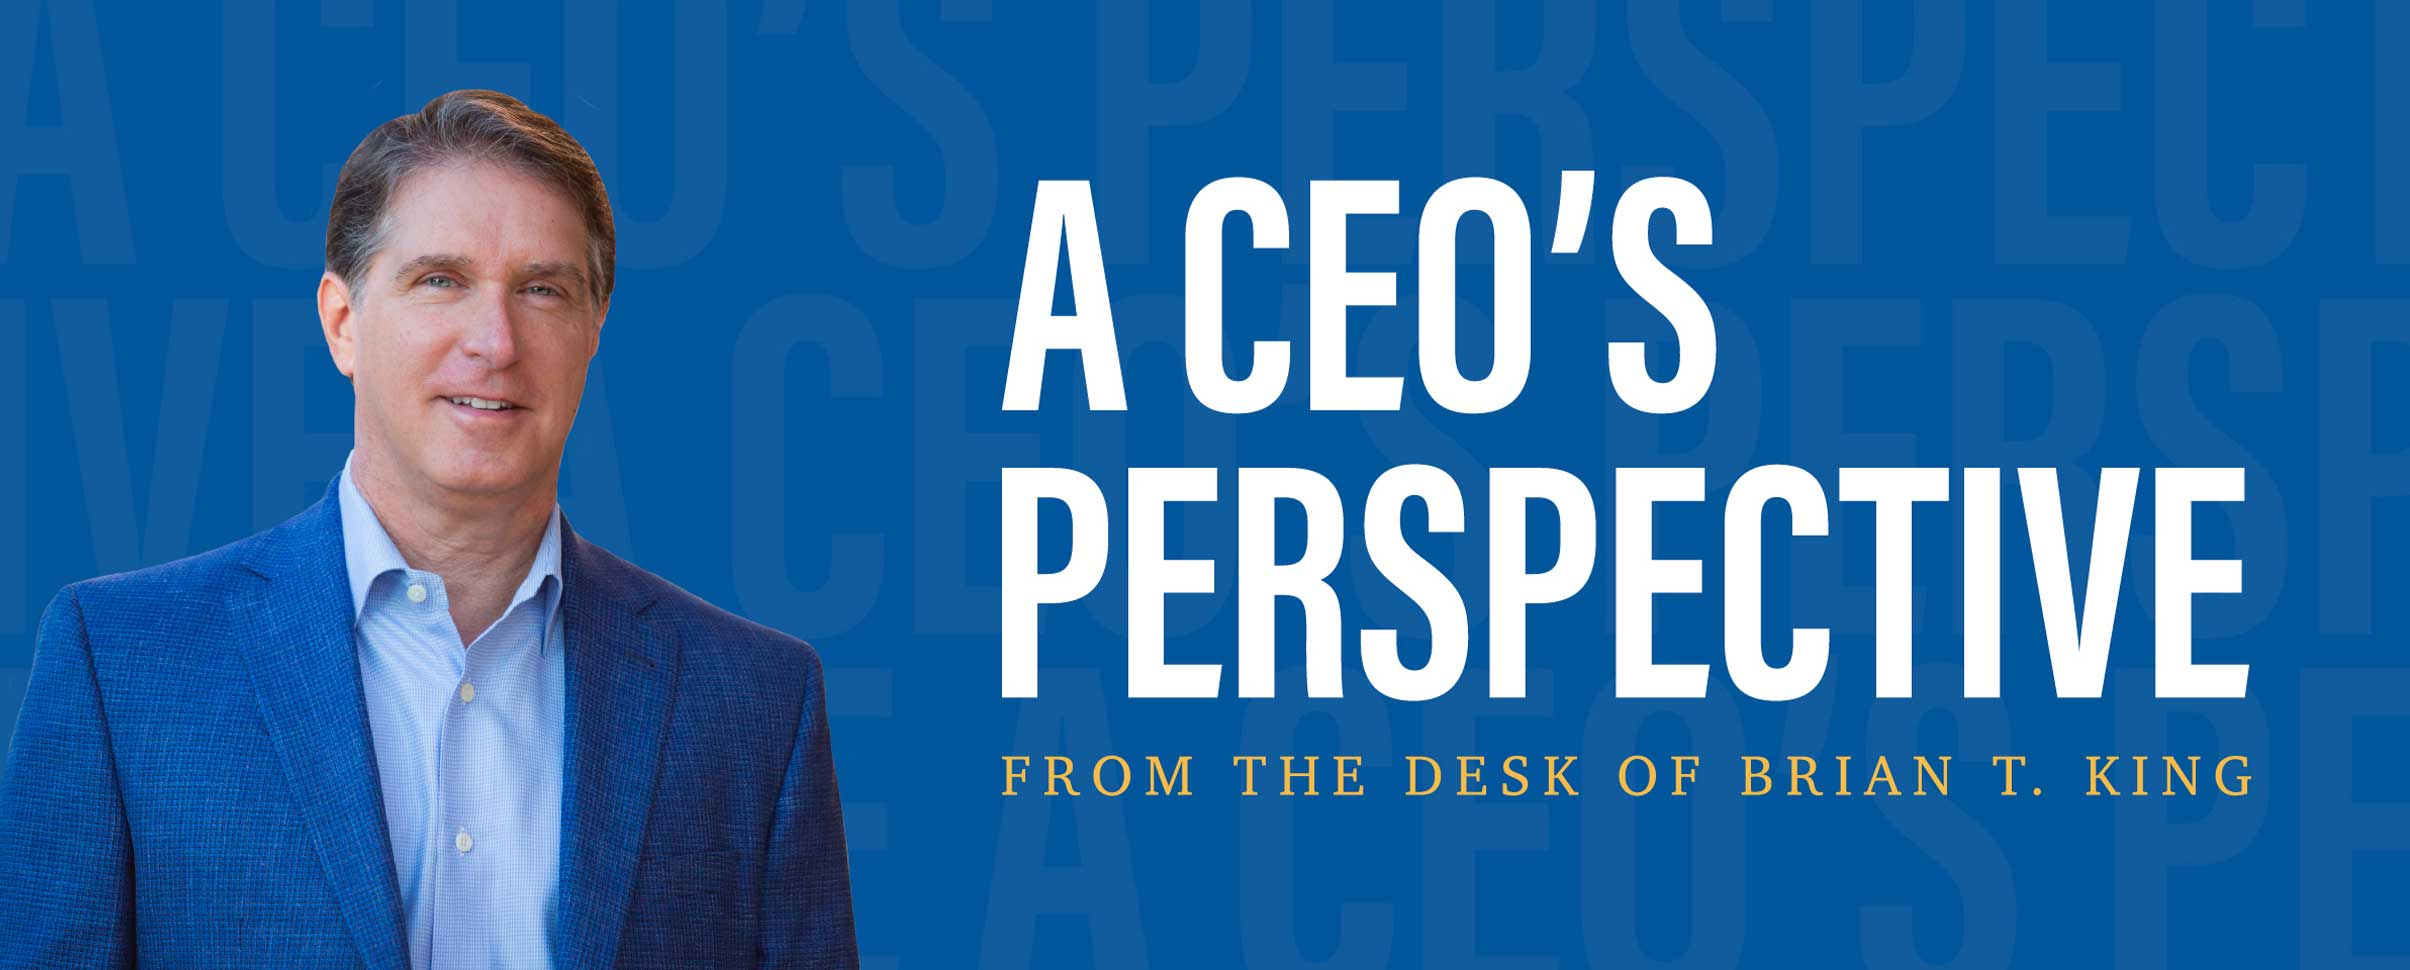 """Brian T. King in a suit with the words """"A CEO's Perspective, From the desk of Brian T. King"""" next to him"""